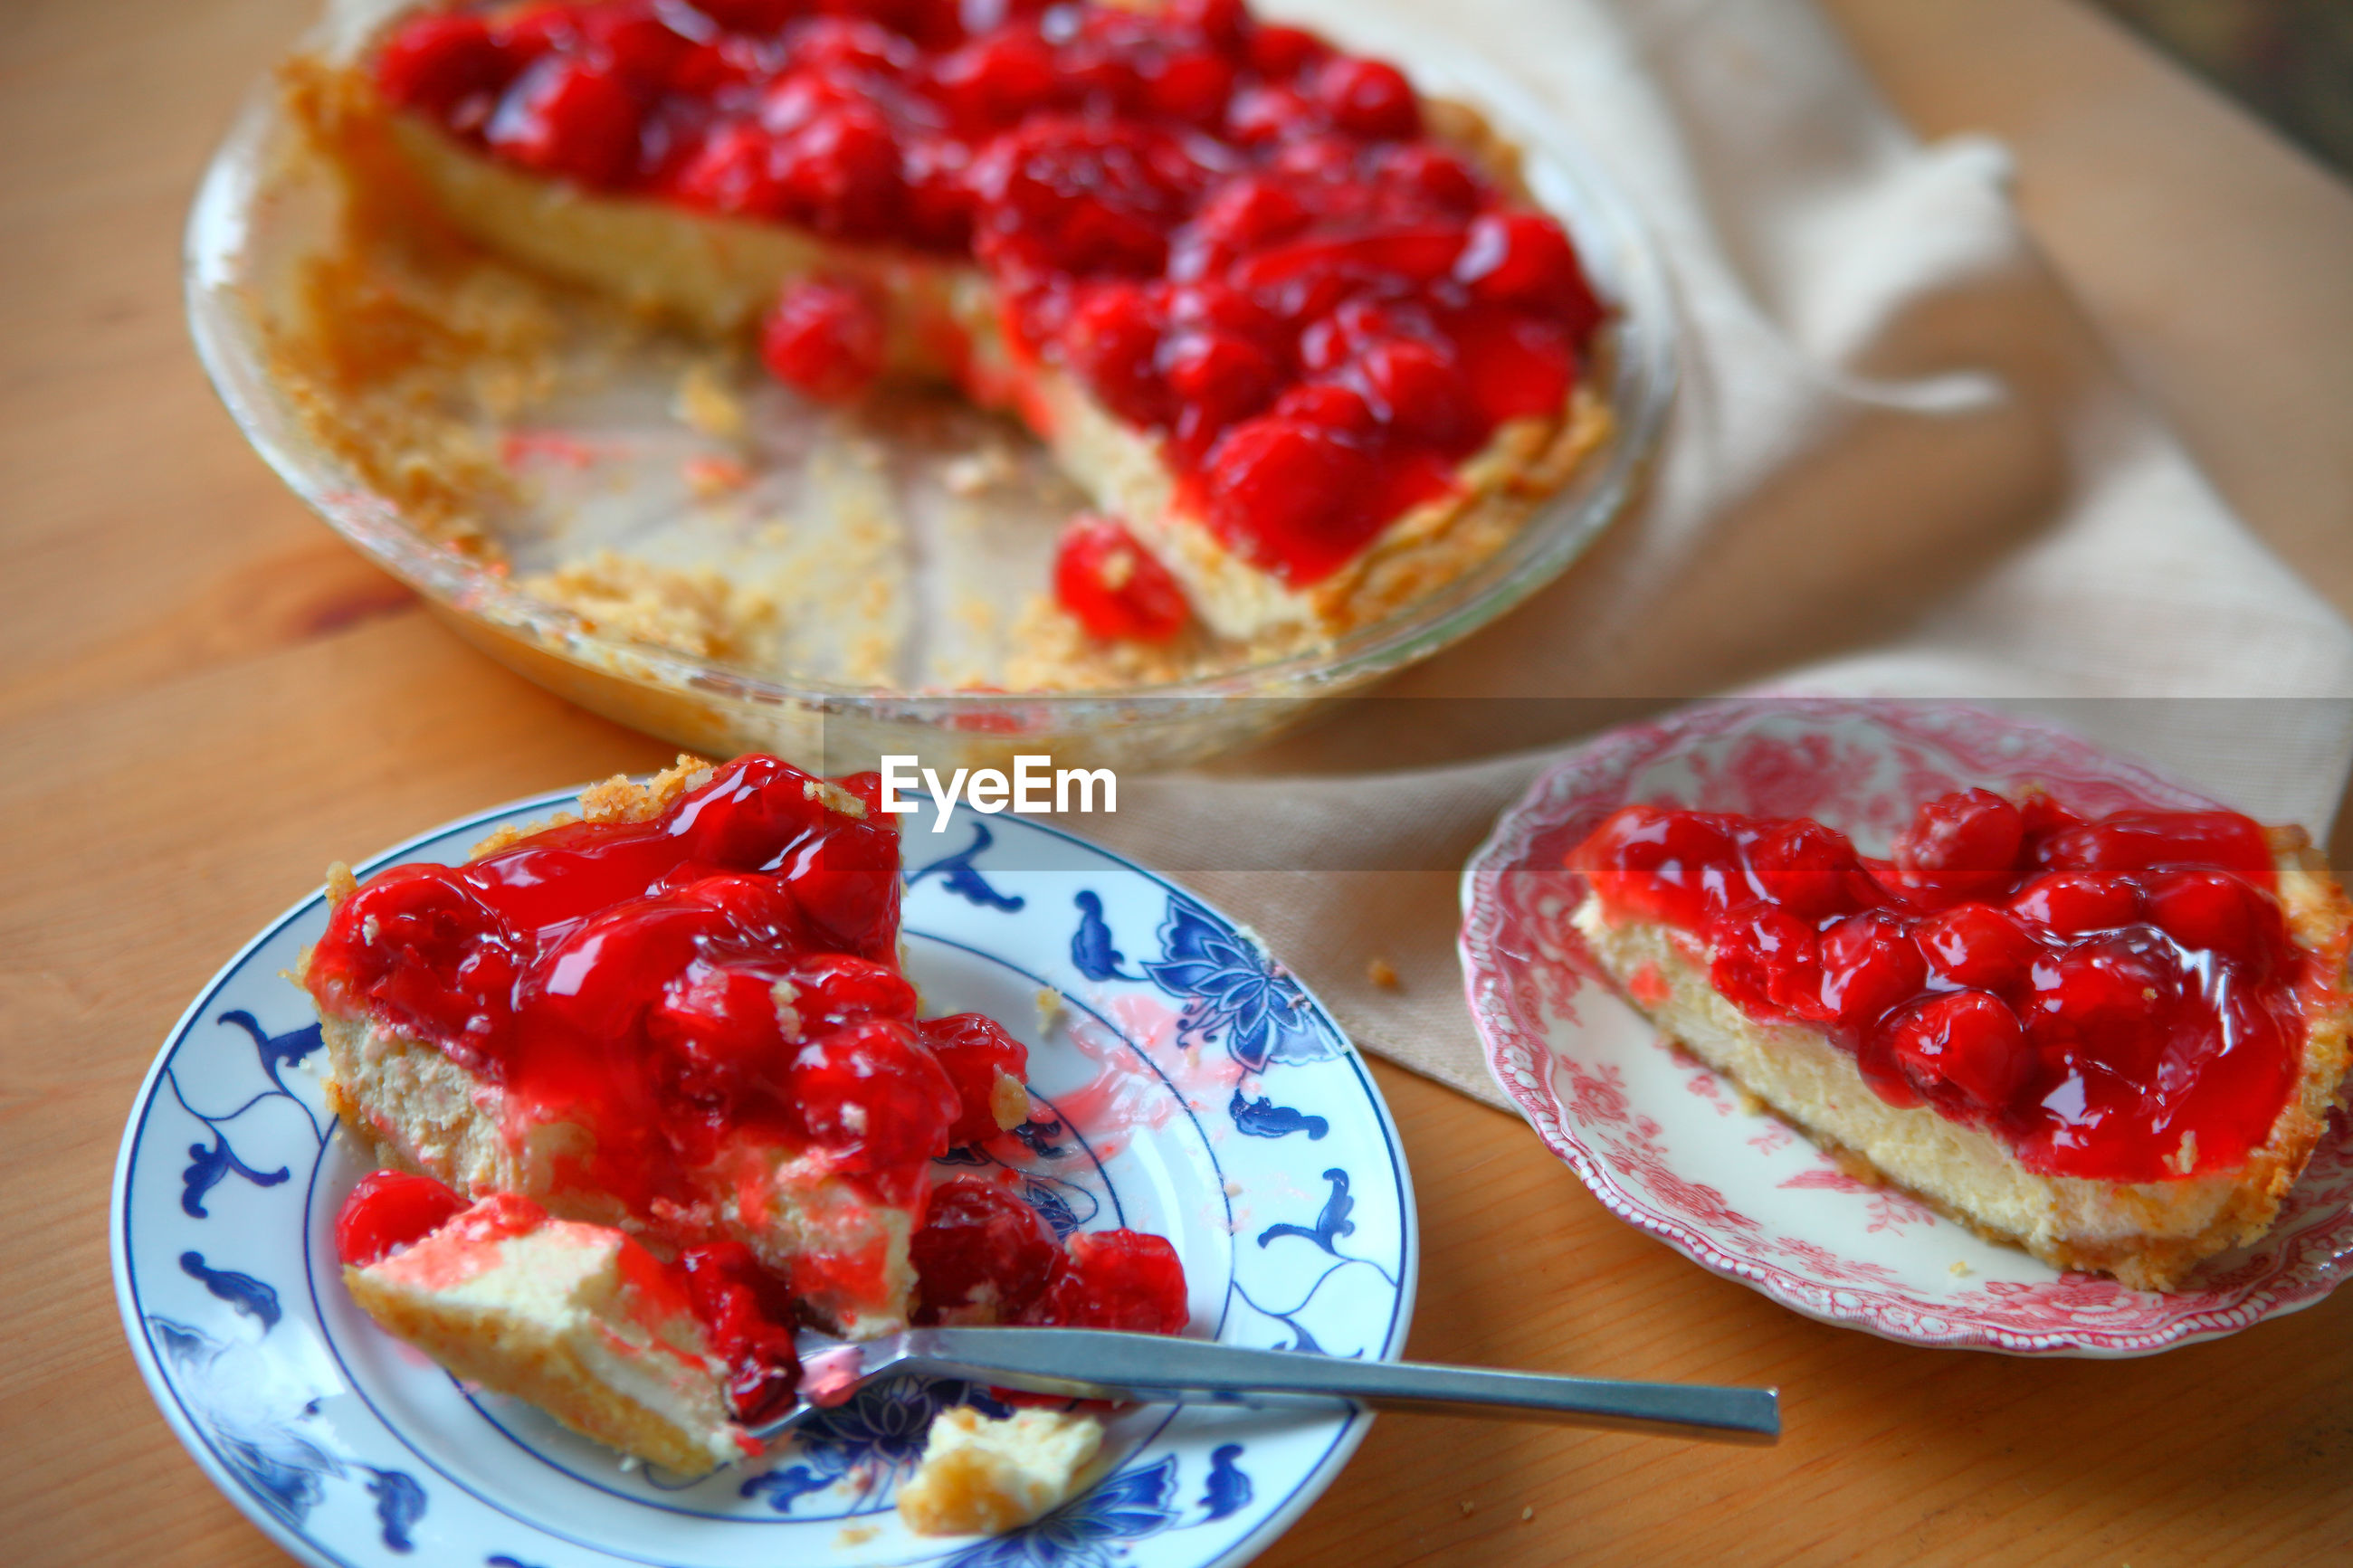 Cherry cream cheese pie, portions served